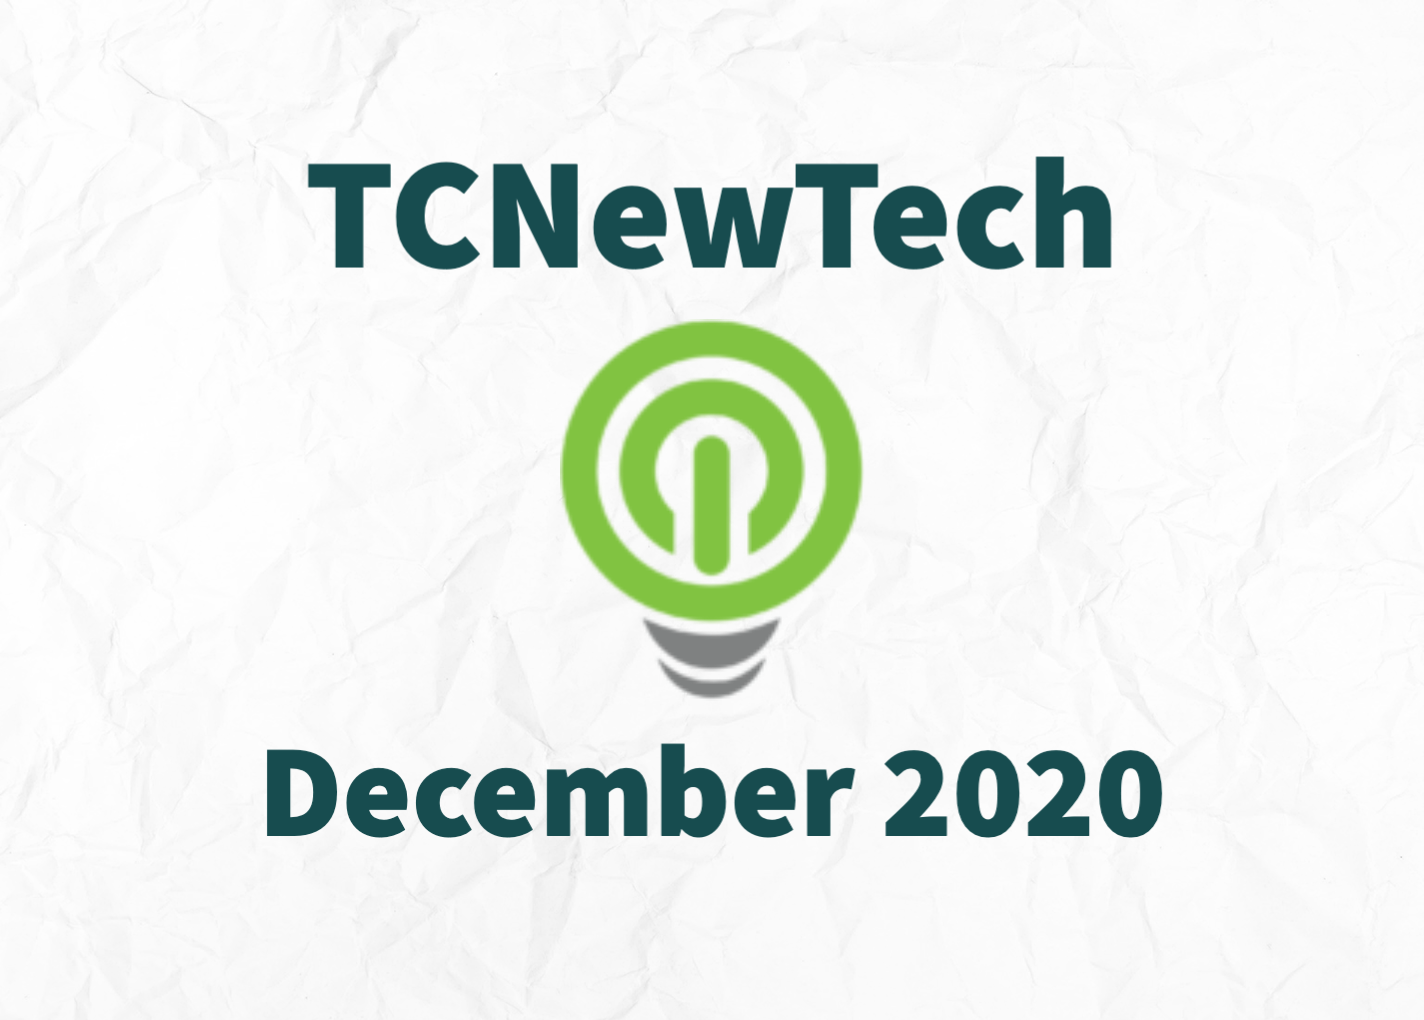 TCNewTech Pitch Contest December 2020